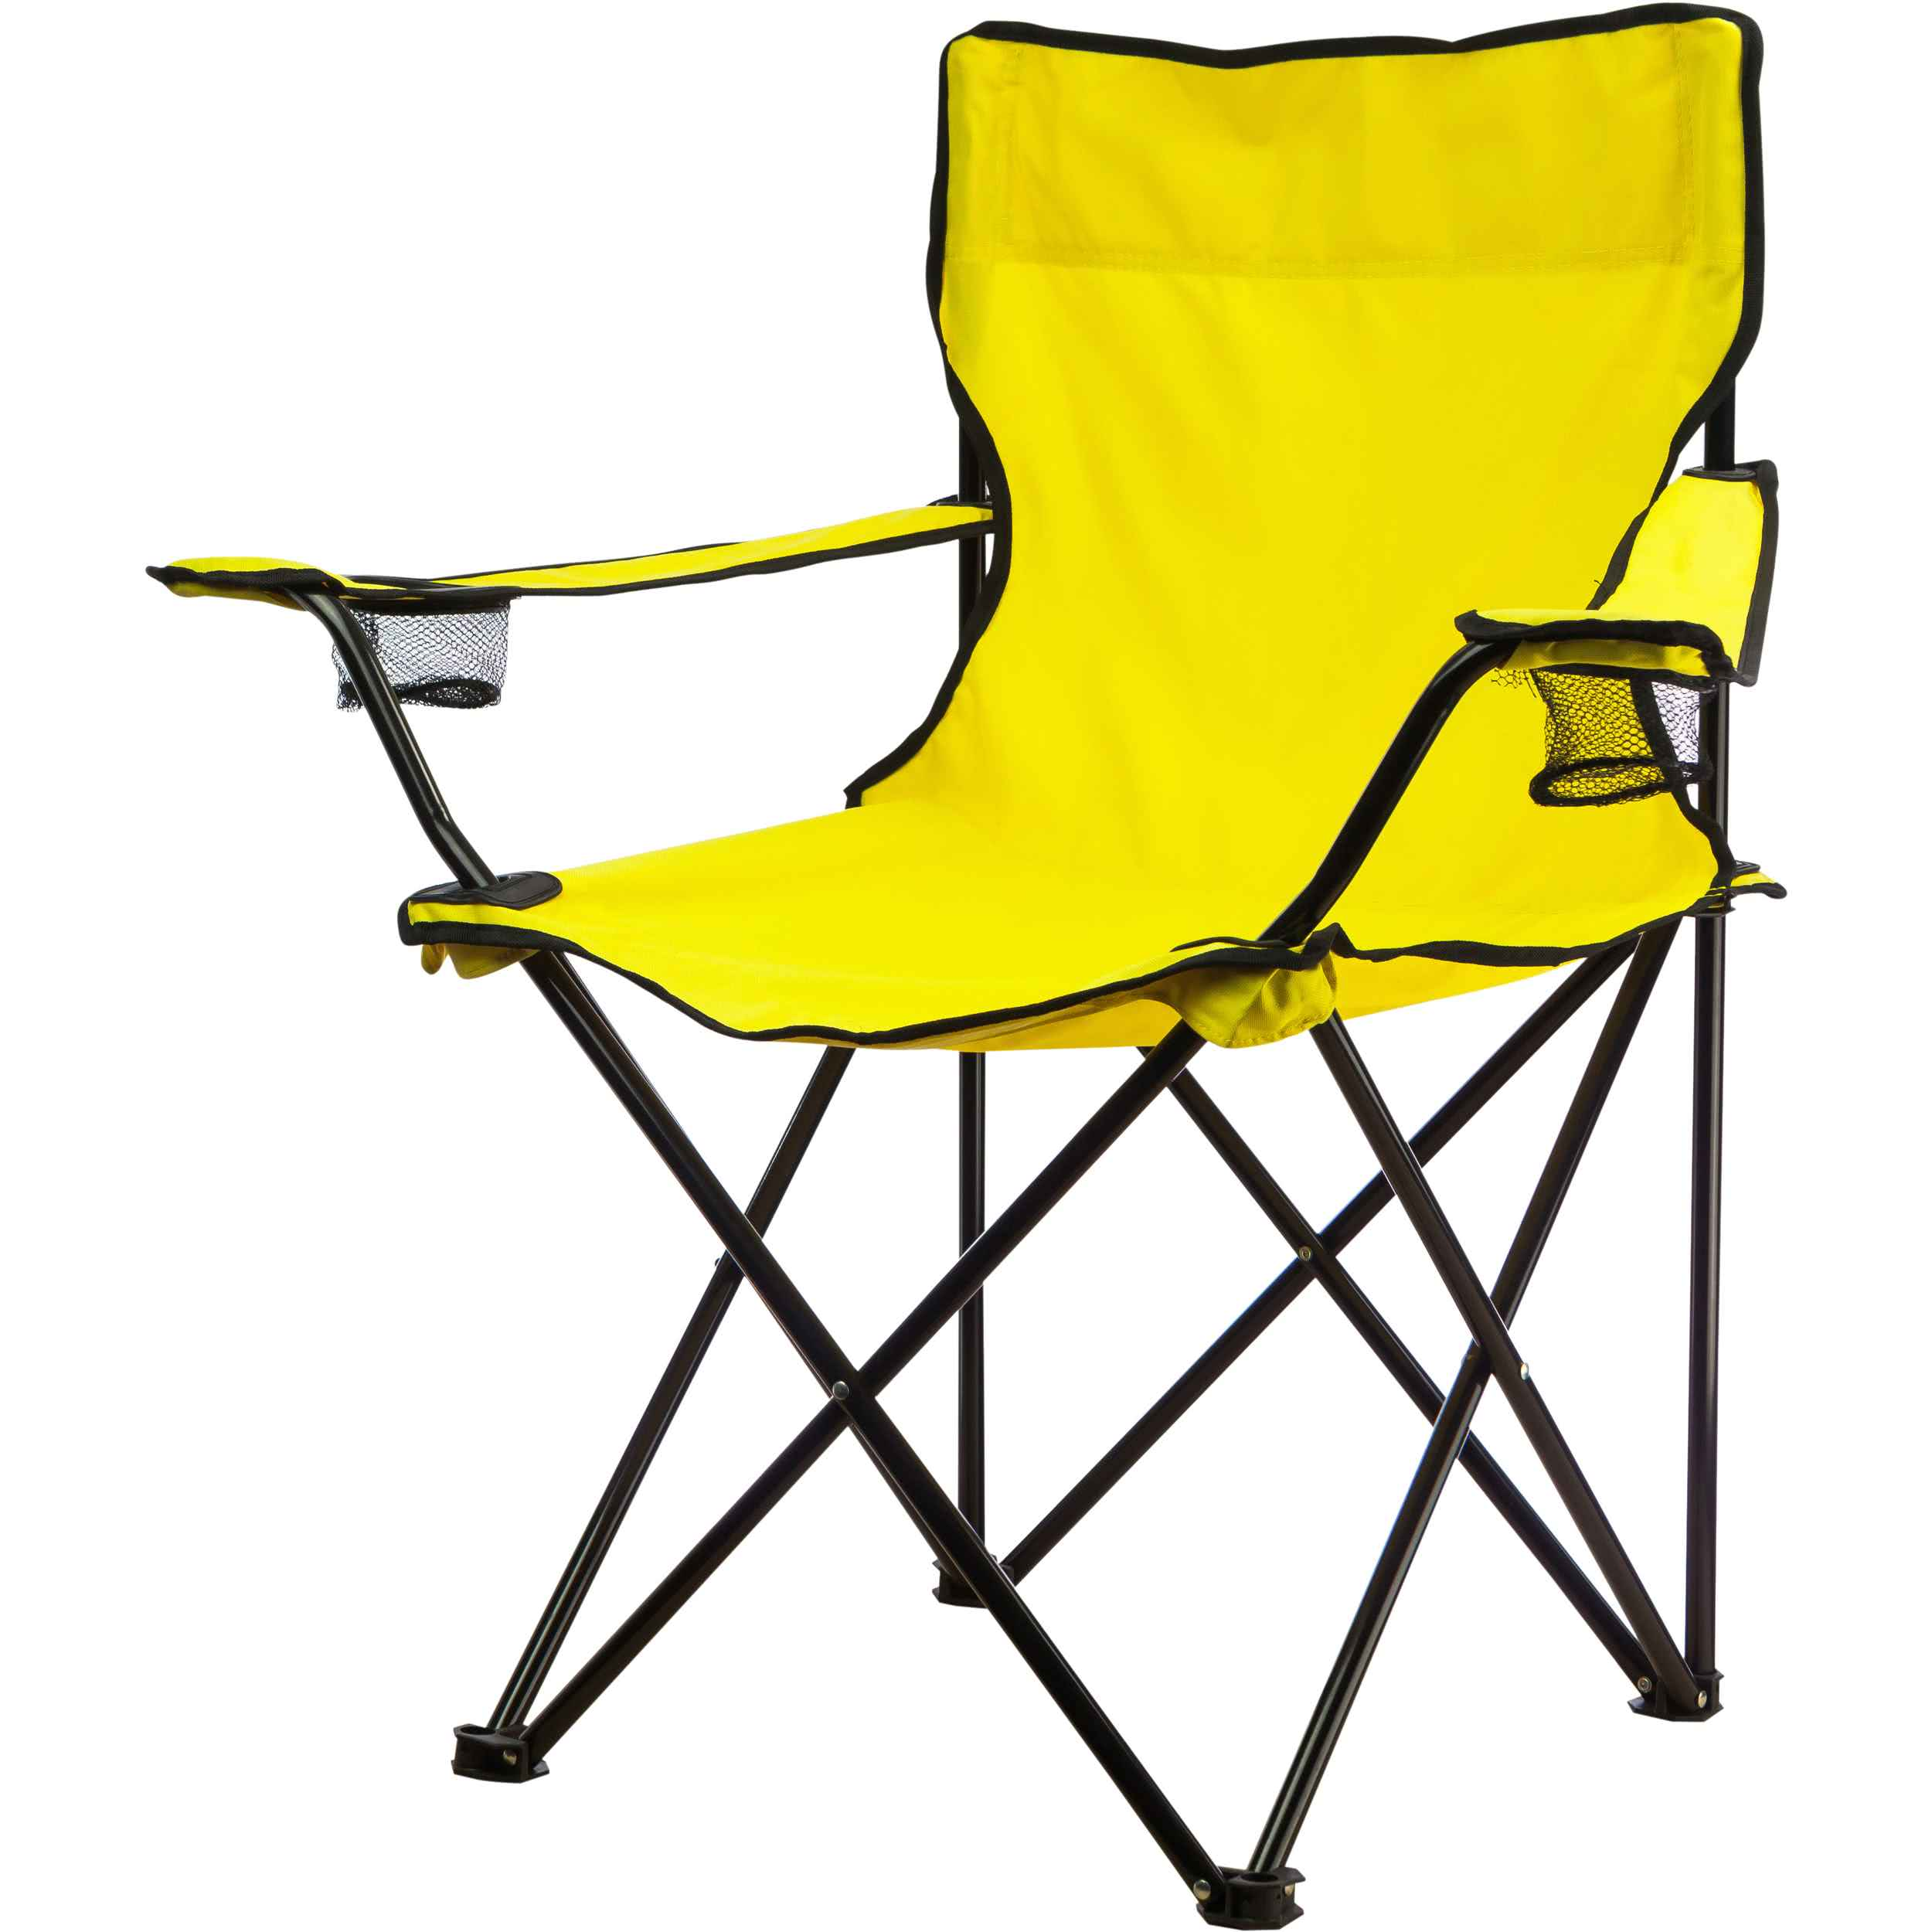 Folding chairs clipart jpg royalty free Folding Chair with Carrying Bag jpg royalty free